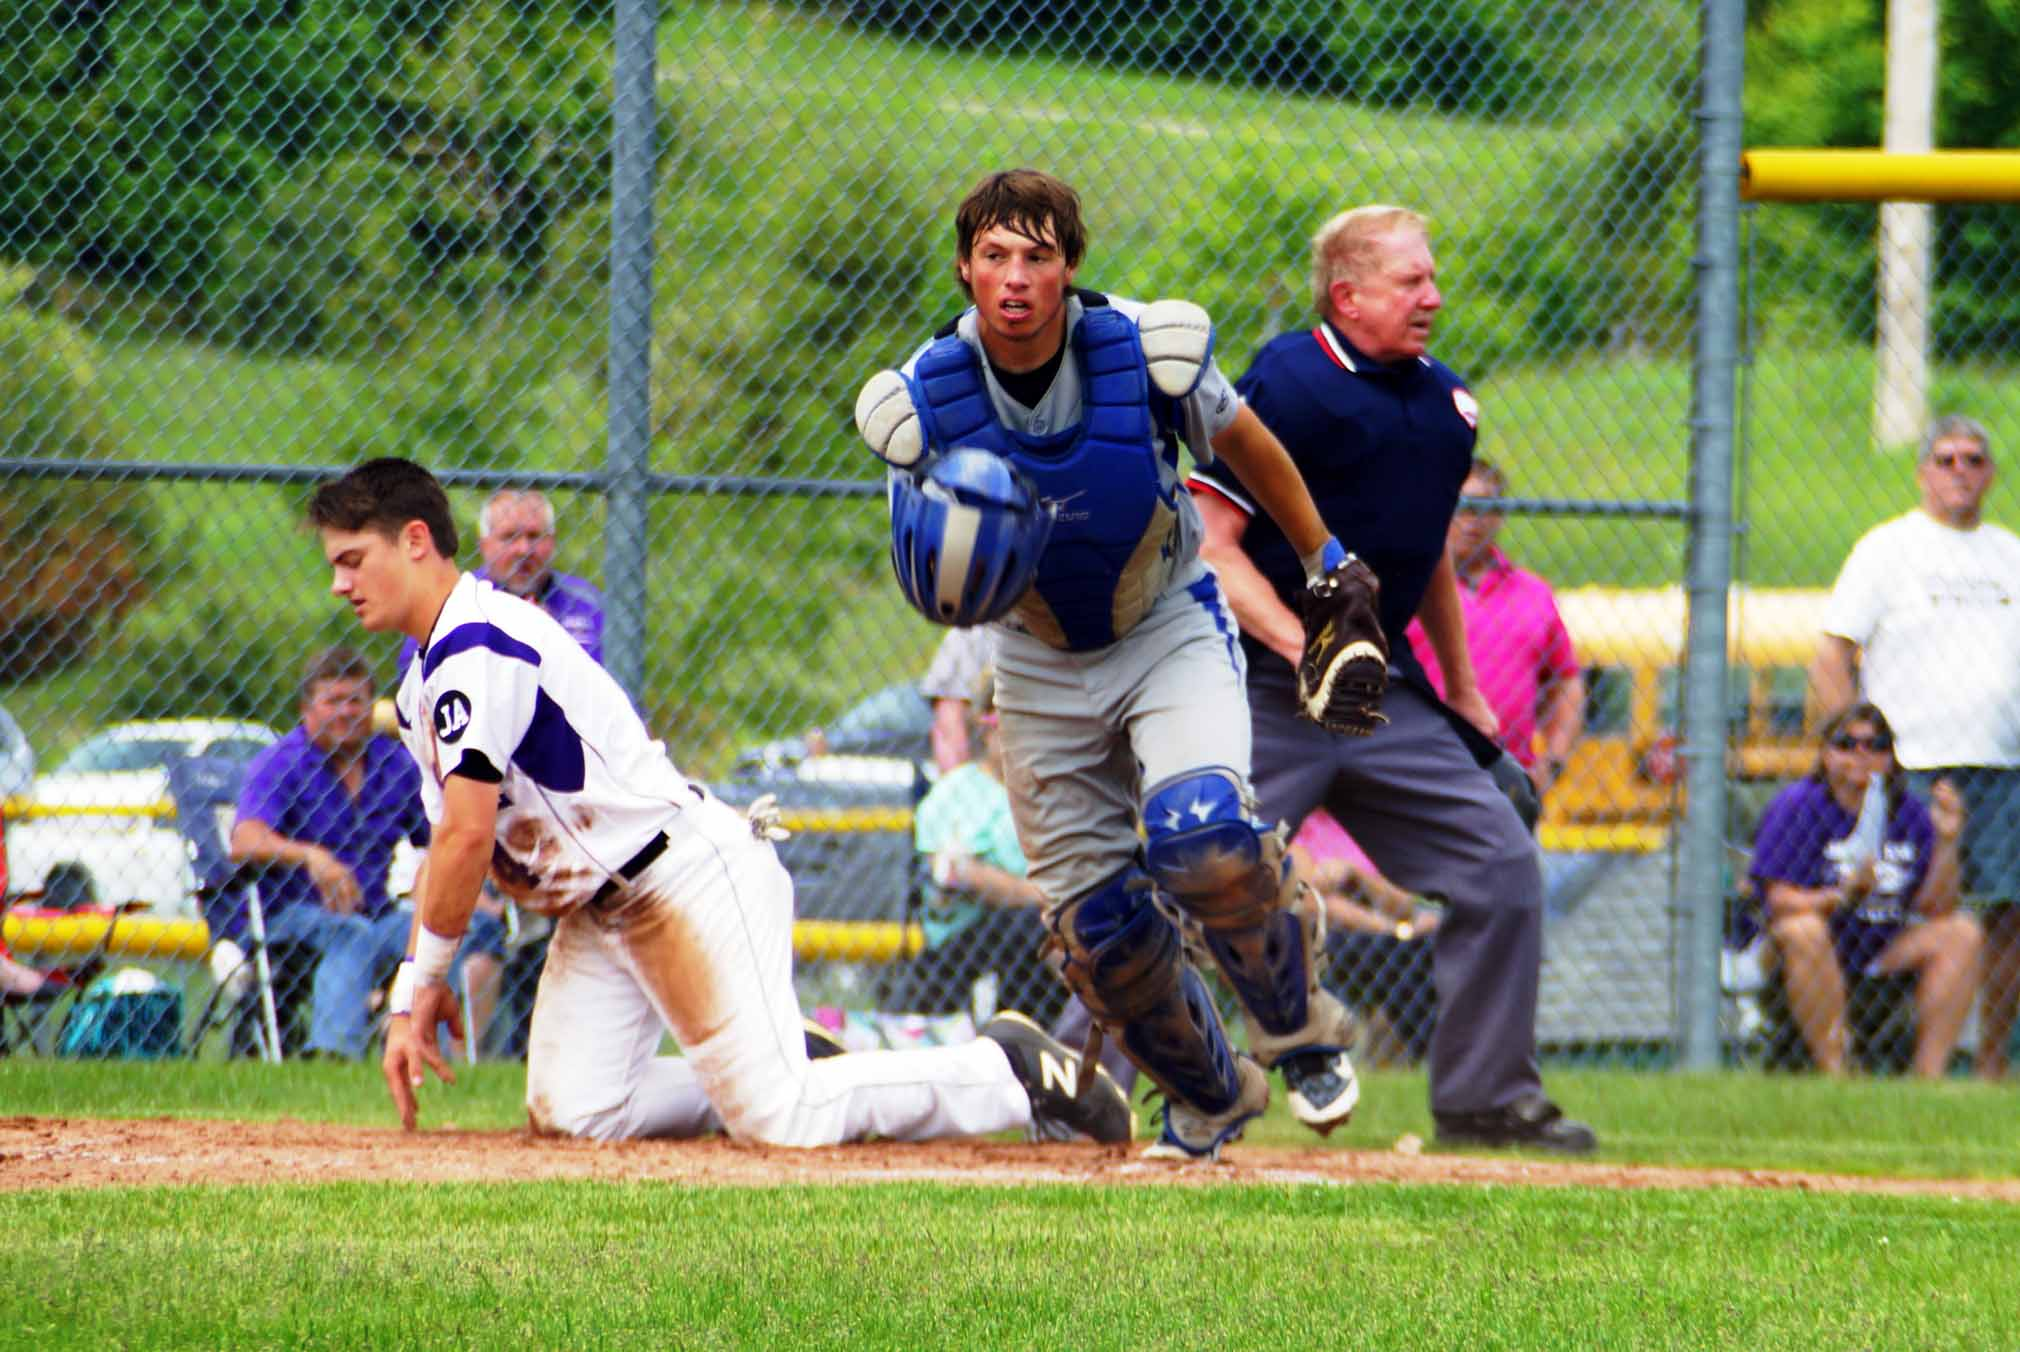 Oakridge baseball team loses an extra-inning heartbreaker, 6-5 to Gladstone, in state quarterfinals